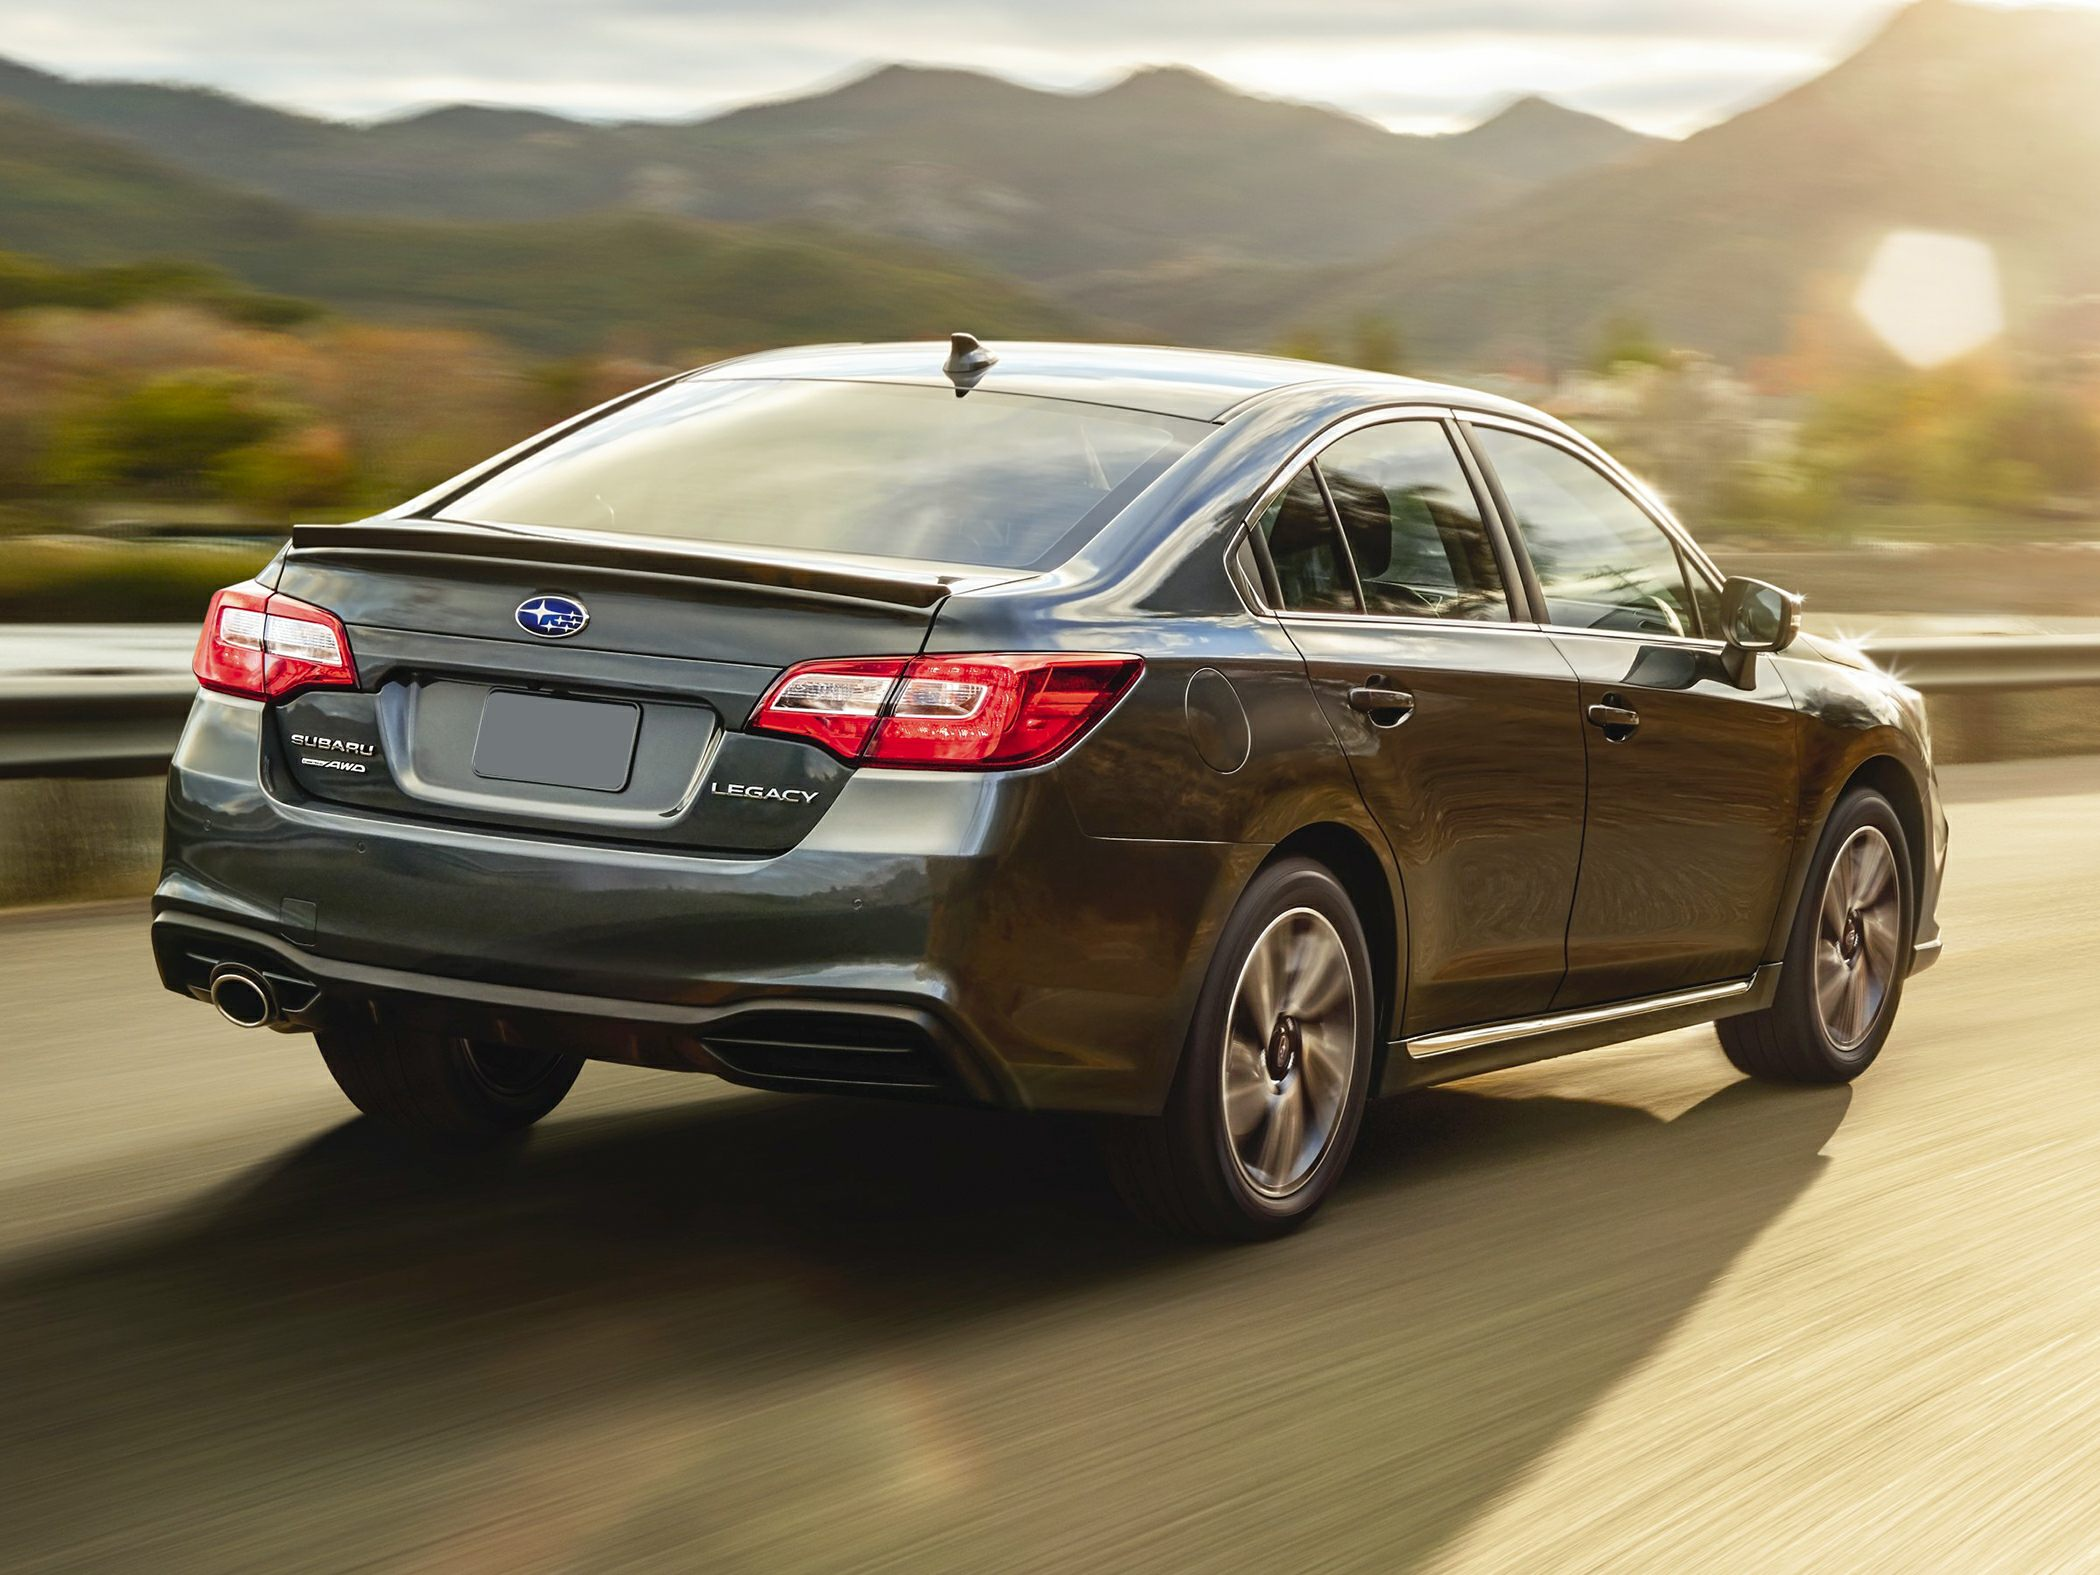 2018 subaru legacy deals prices incentives leases overview limited vanachro Gallery